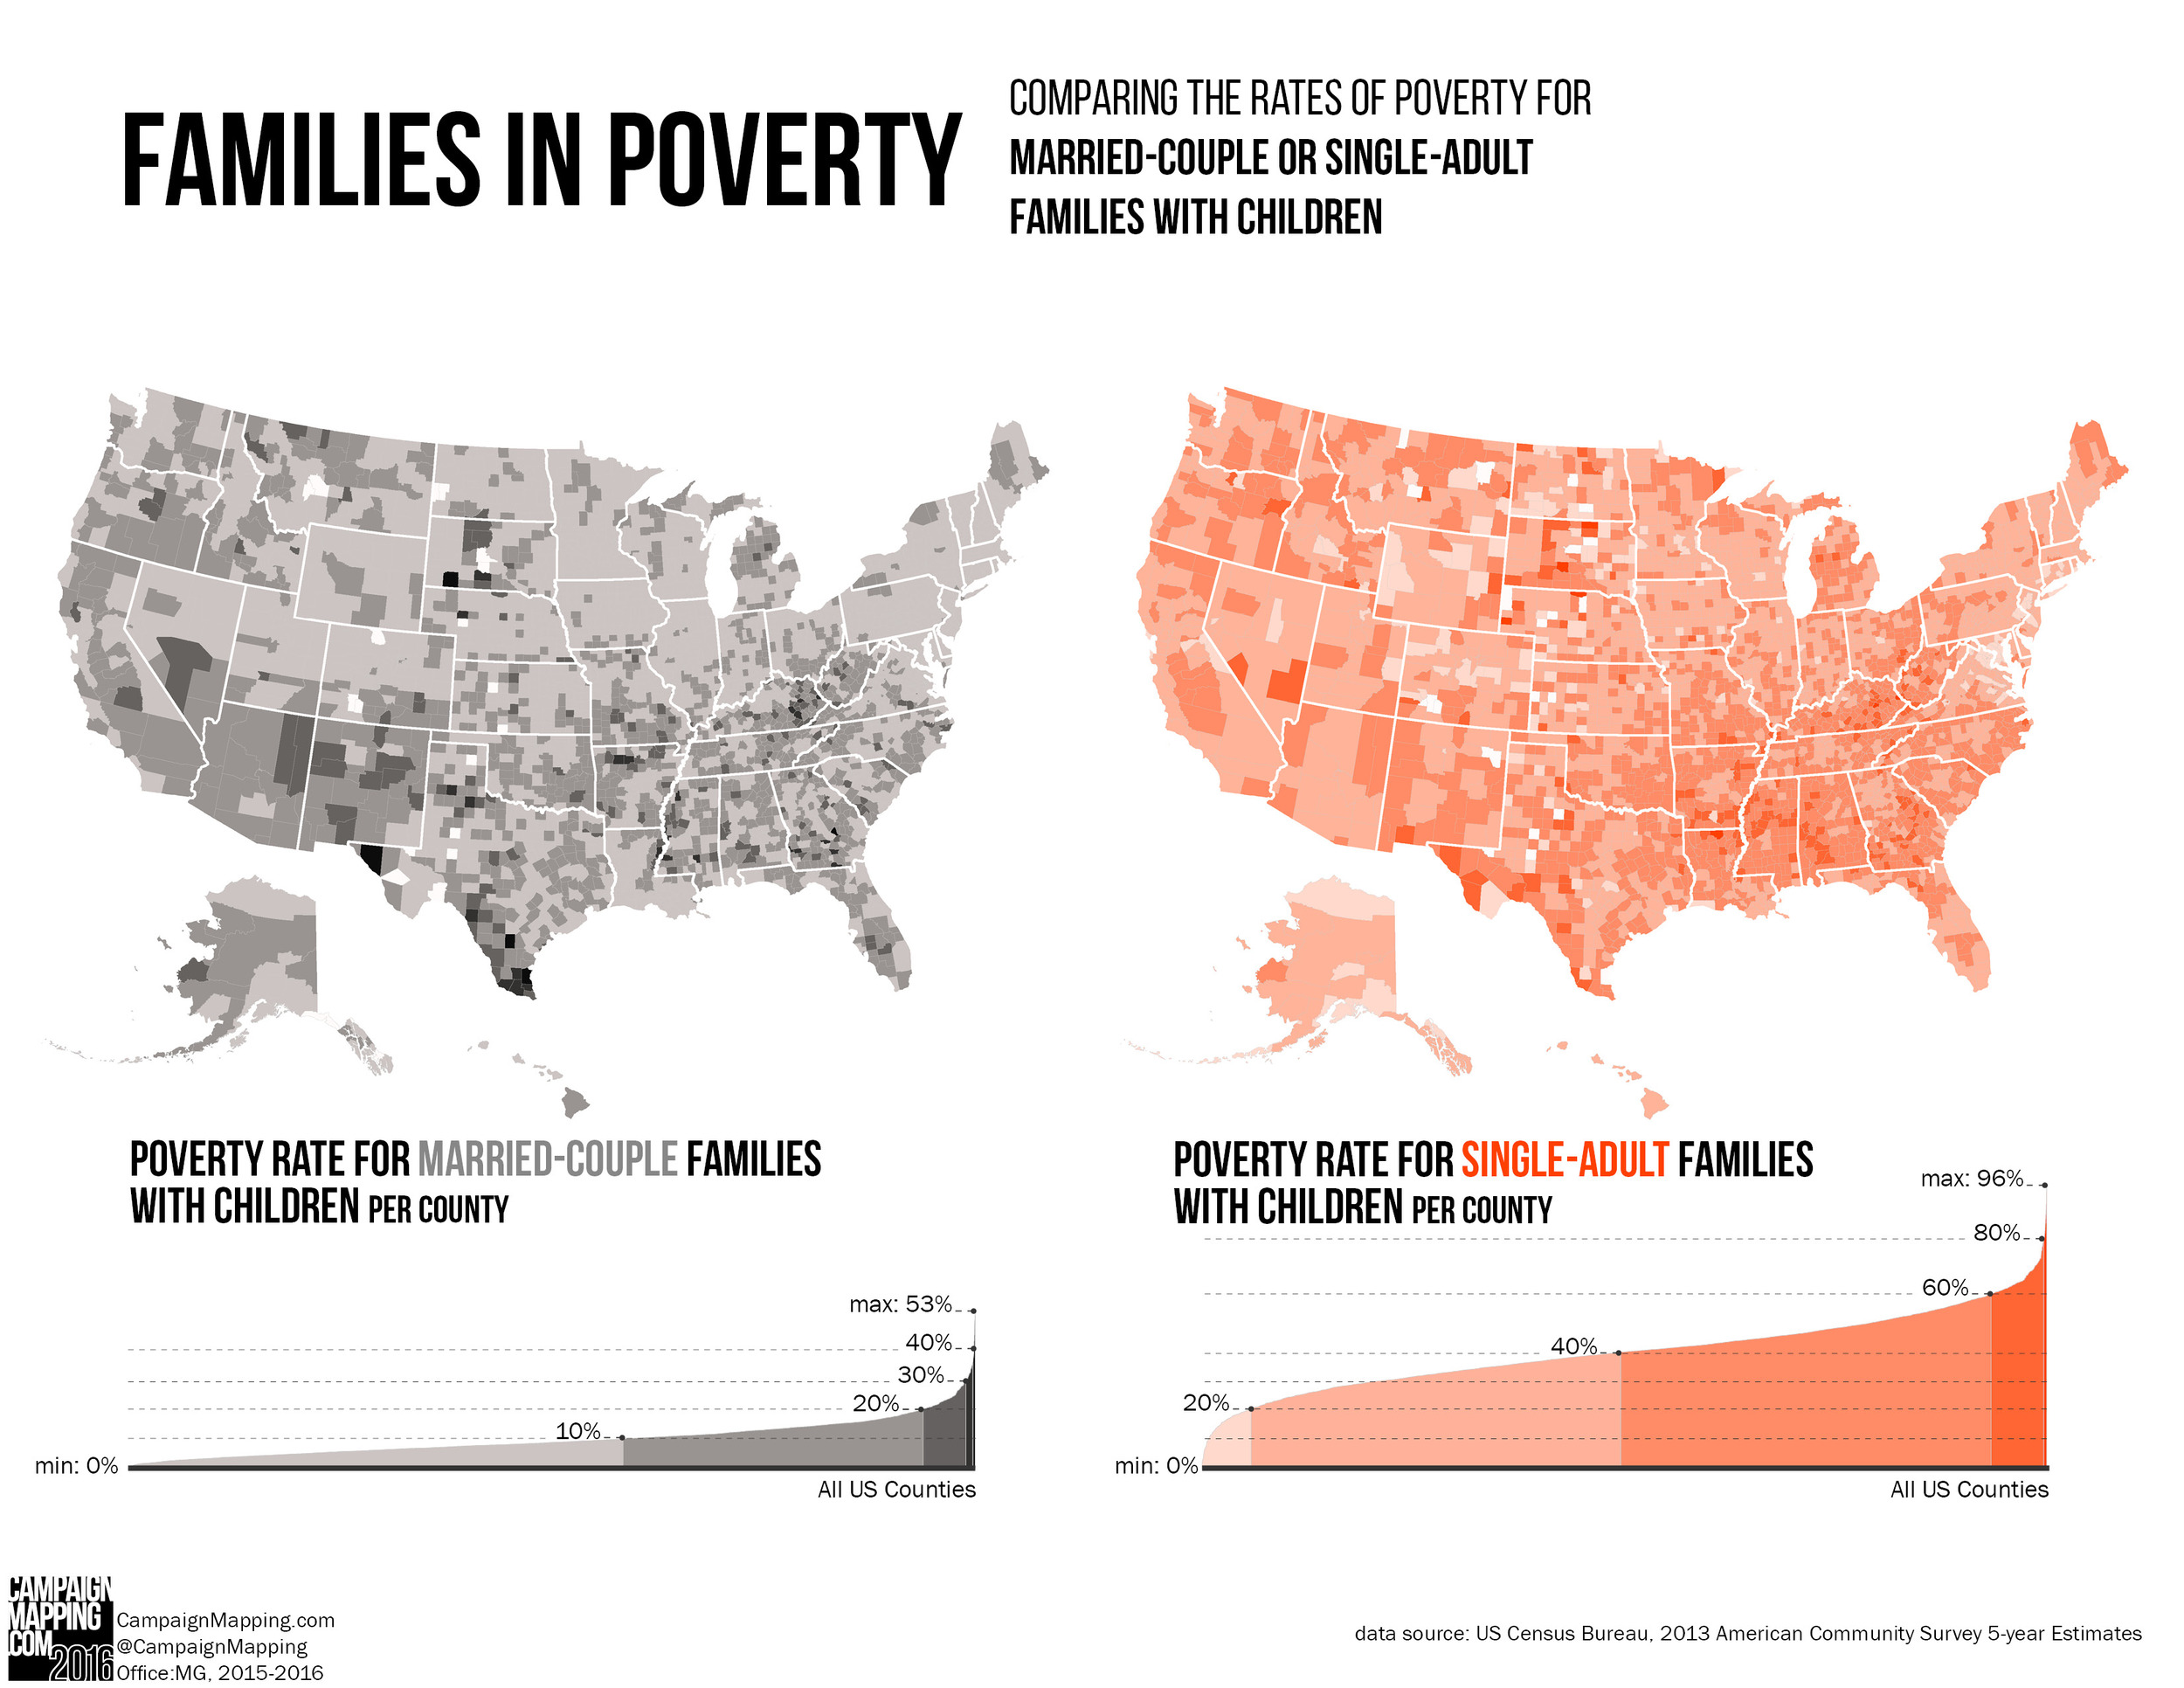 FamiliesInPoverty_Married_Compare.jpg